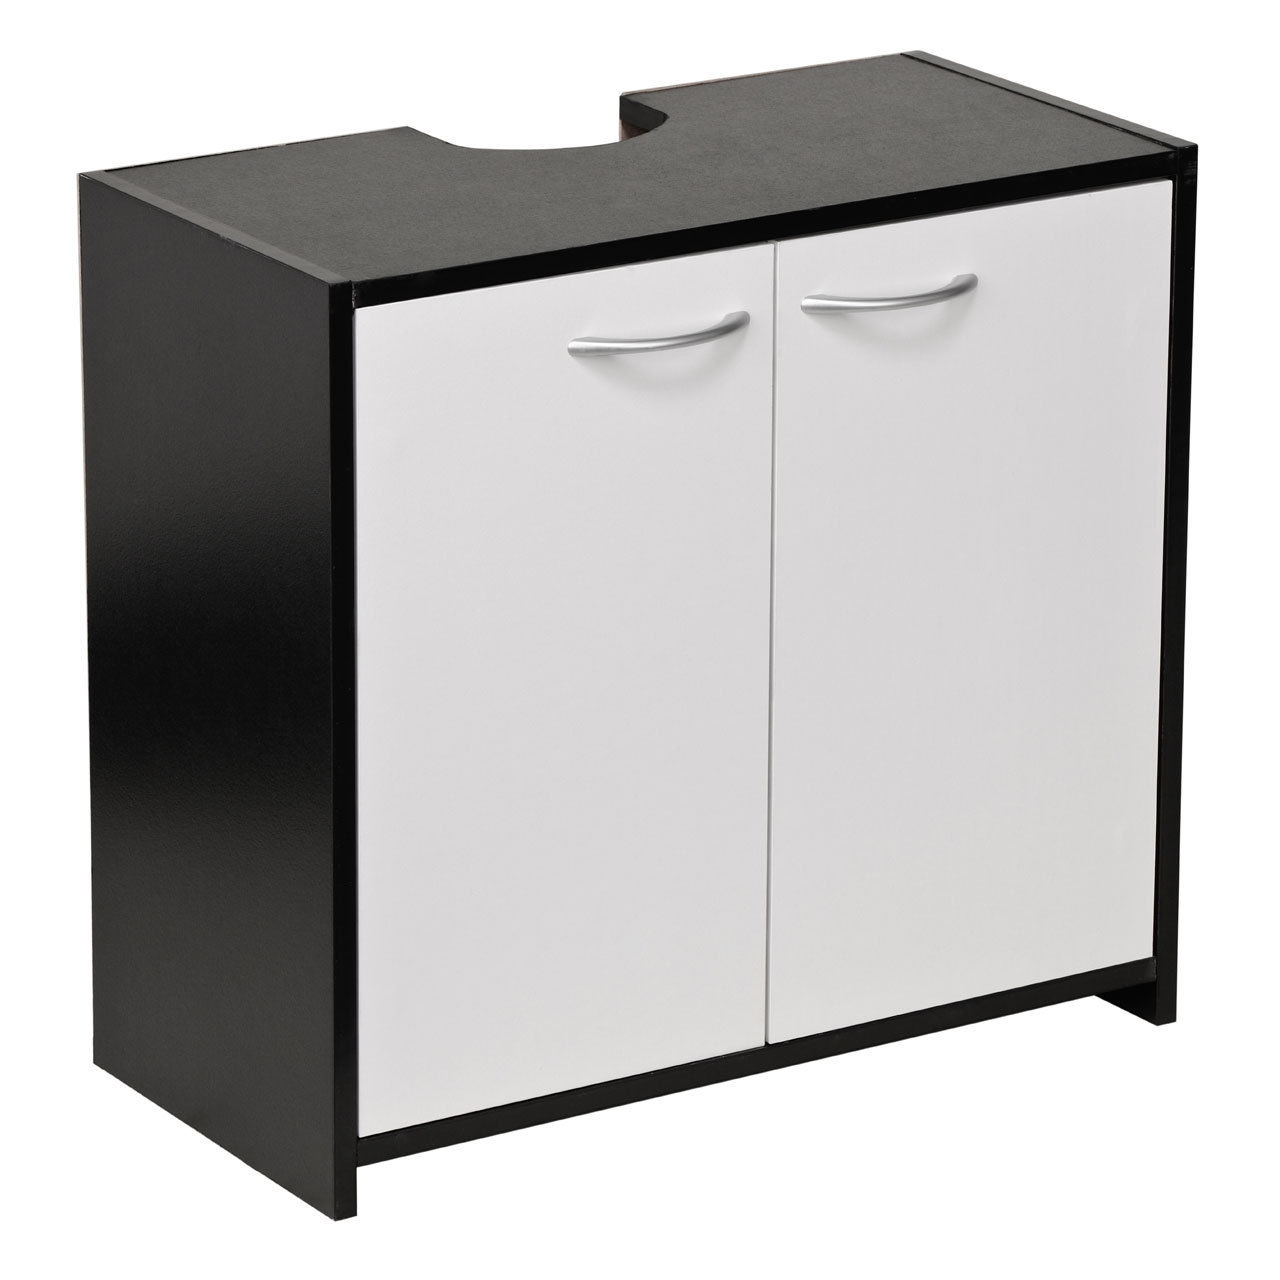 Under Sink Storage Cabinet With 1 Compartment And 3 Drawers